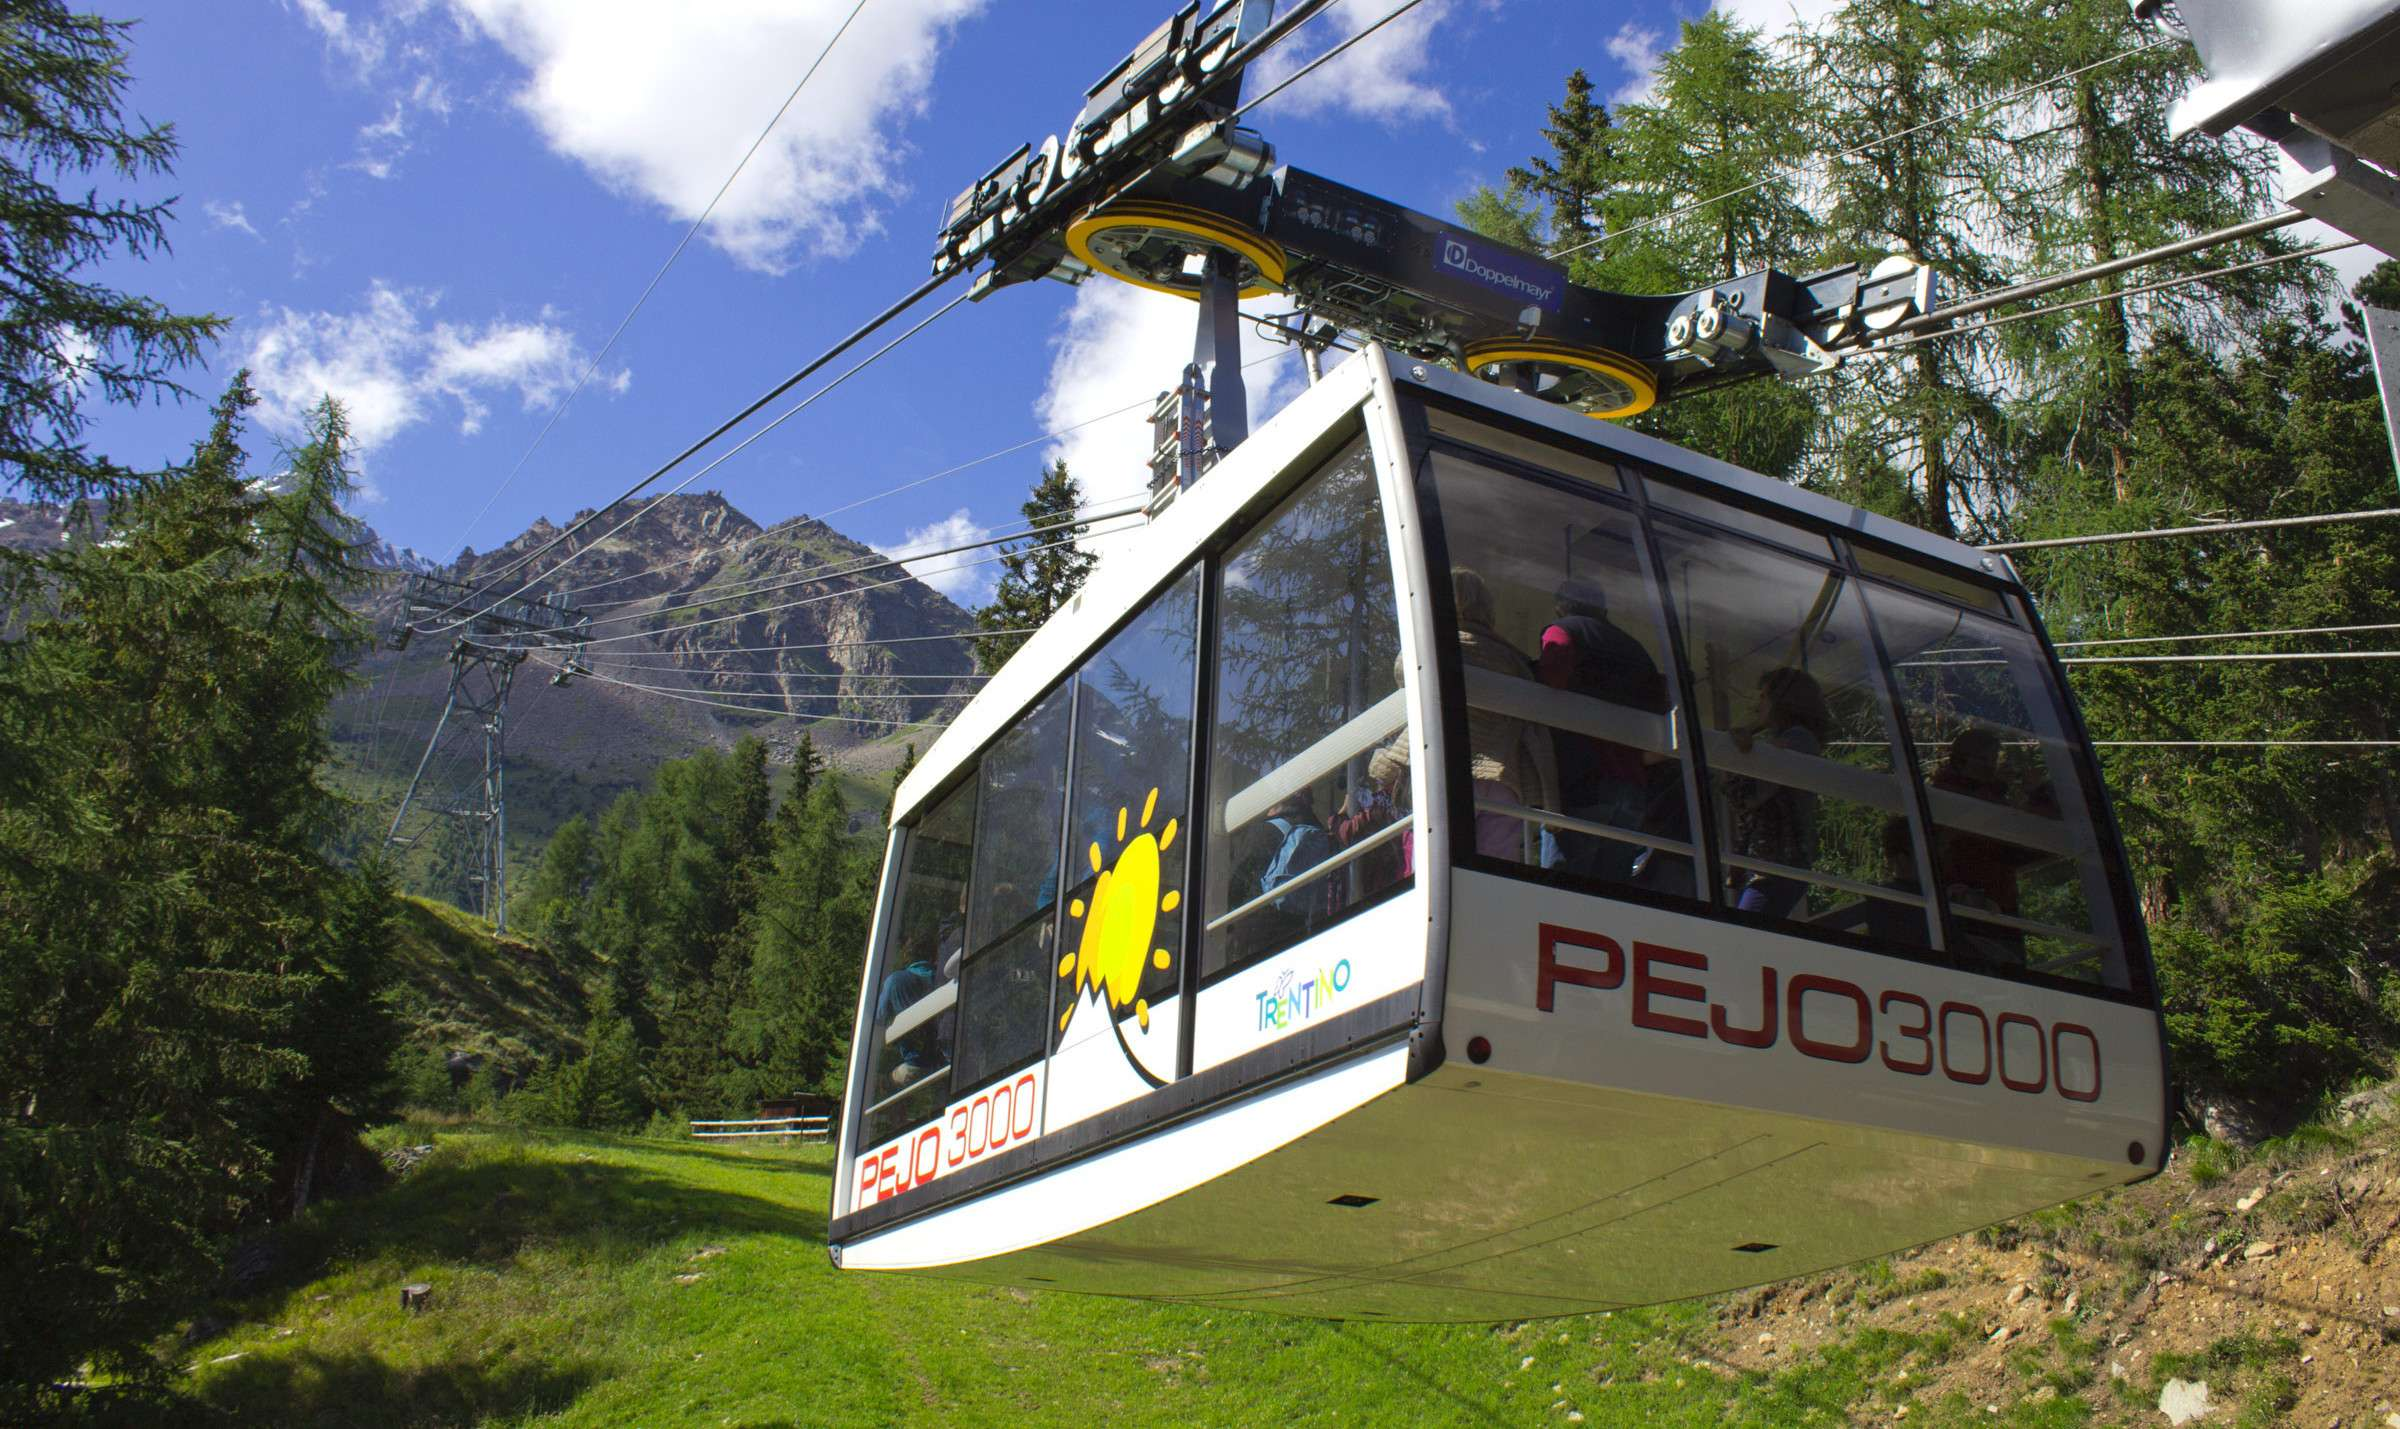 Get in the cable car up to 3000 meters